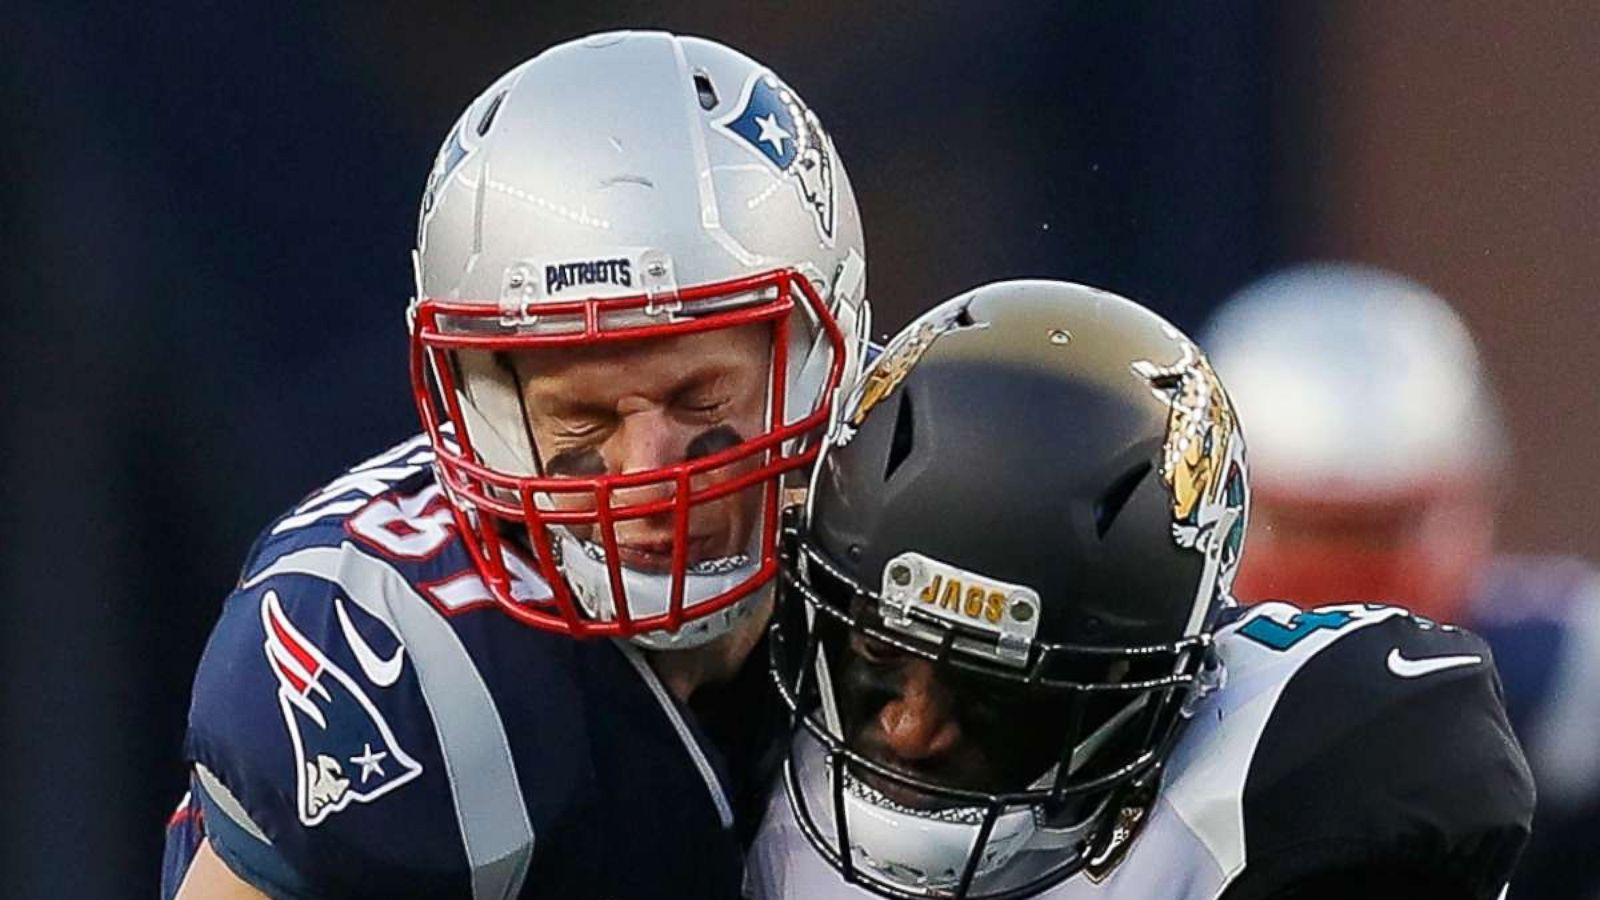 After Gronkowski injury, here's what